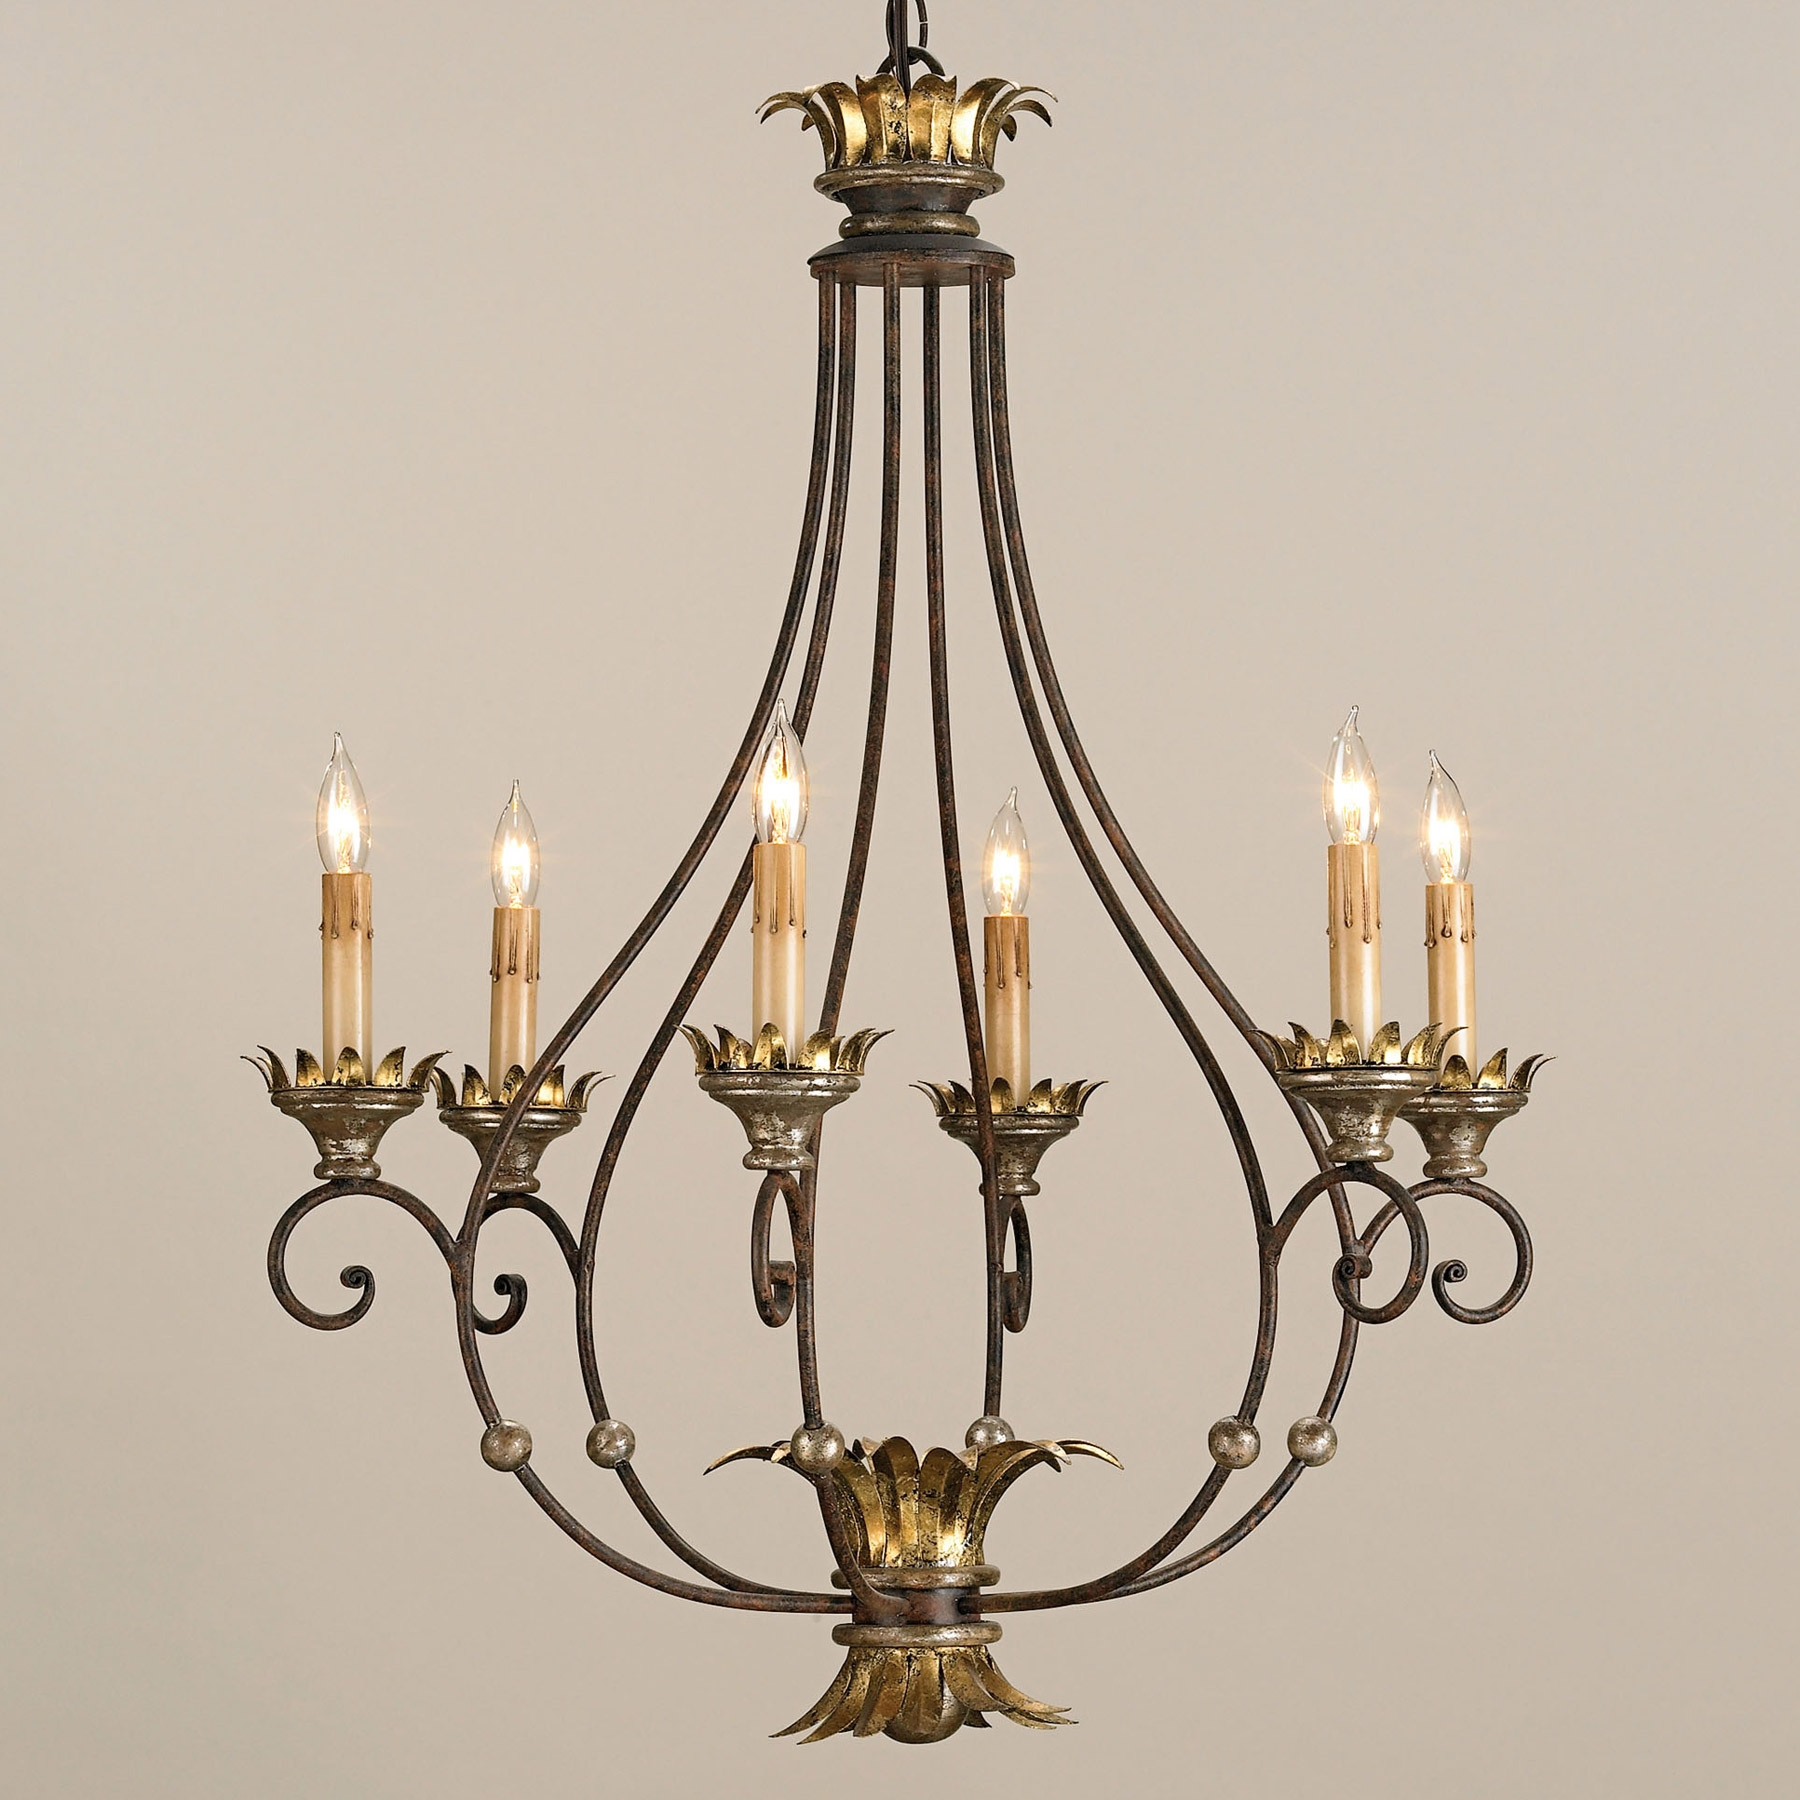 Traditional Chandeliers Luxury For Your Home Decorating Ideas With Inside Traditional Chandelier (Image 12 of 15)